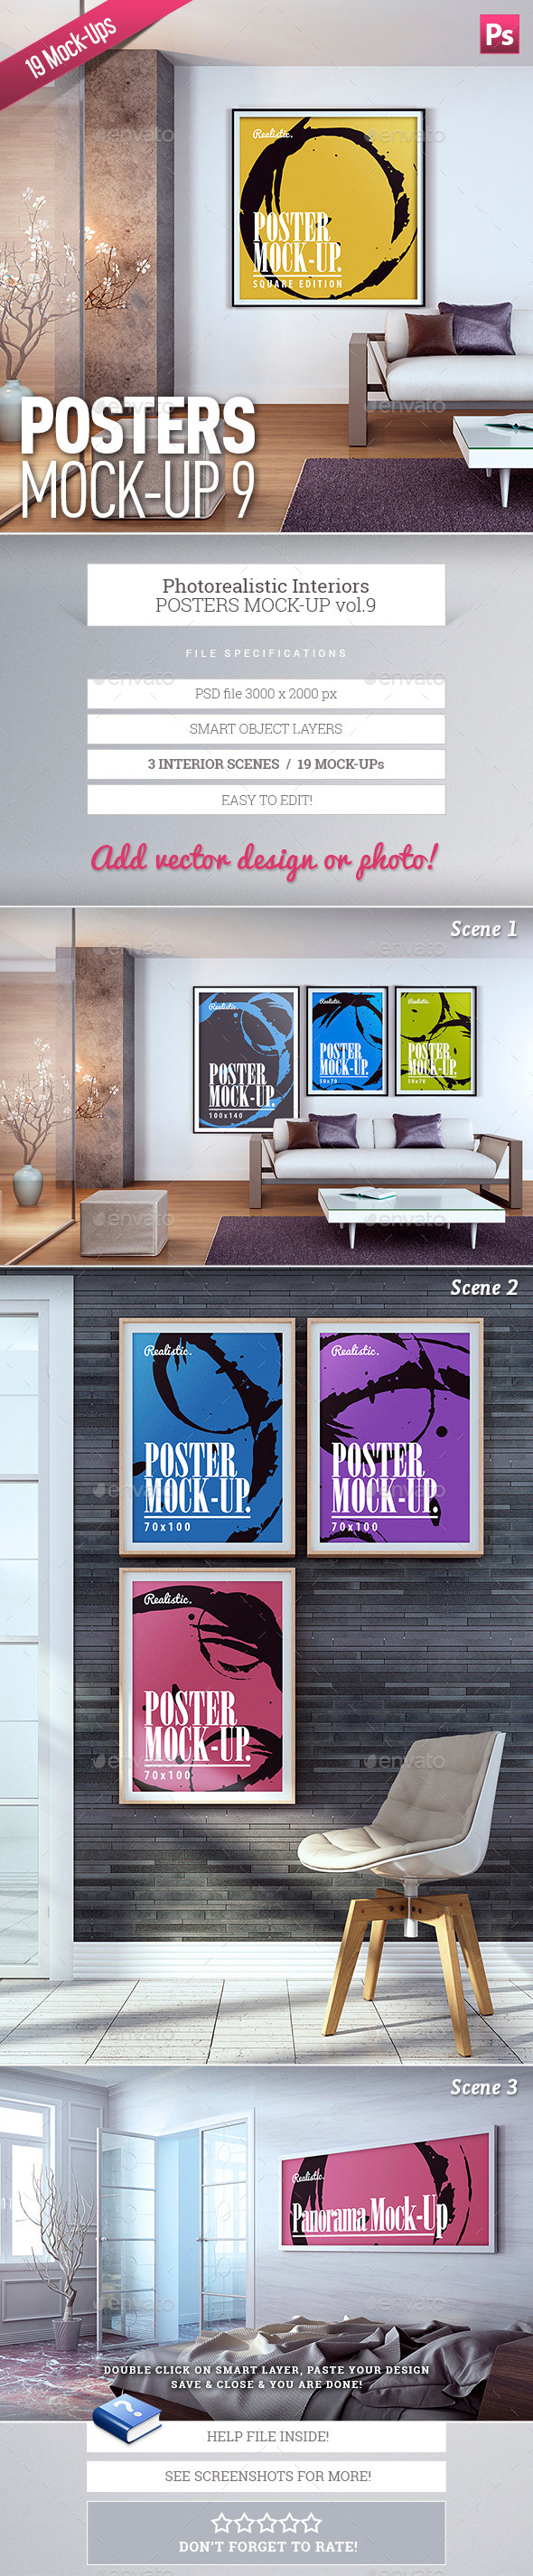 GraphicRiver Posters Mock-Up Vol.9 9946033